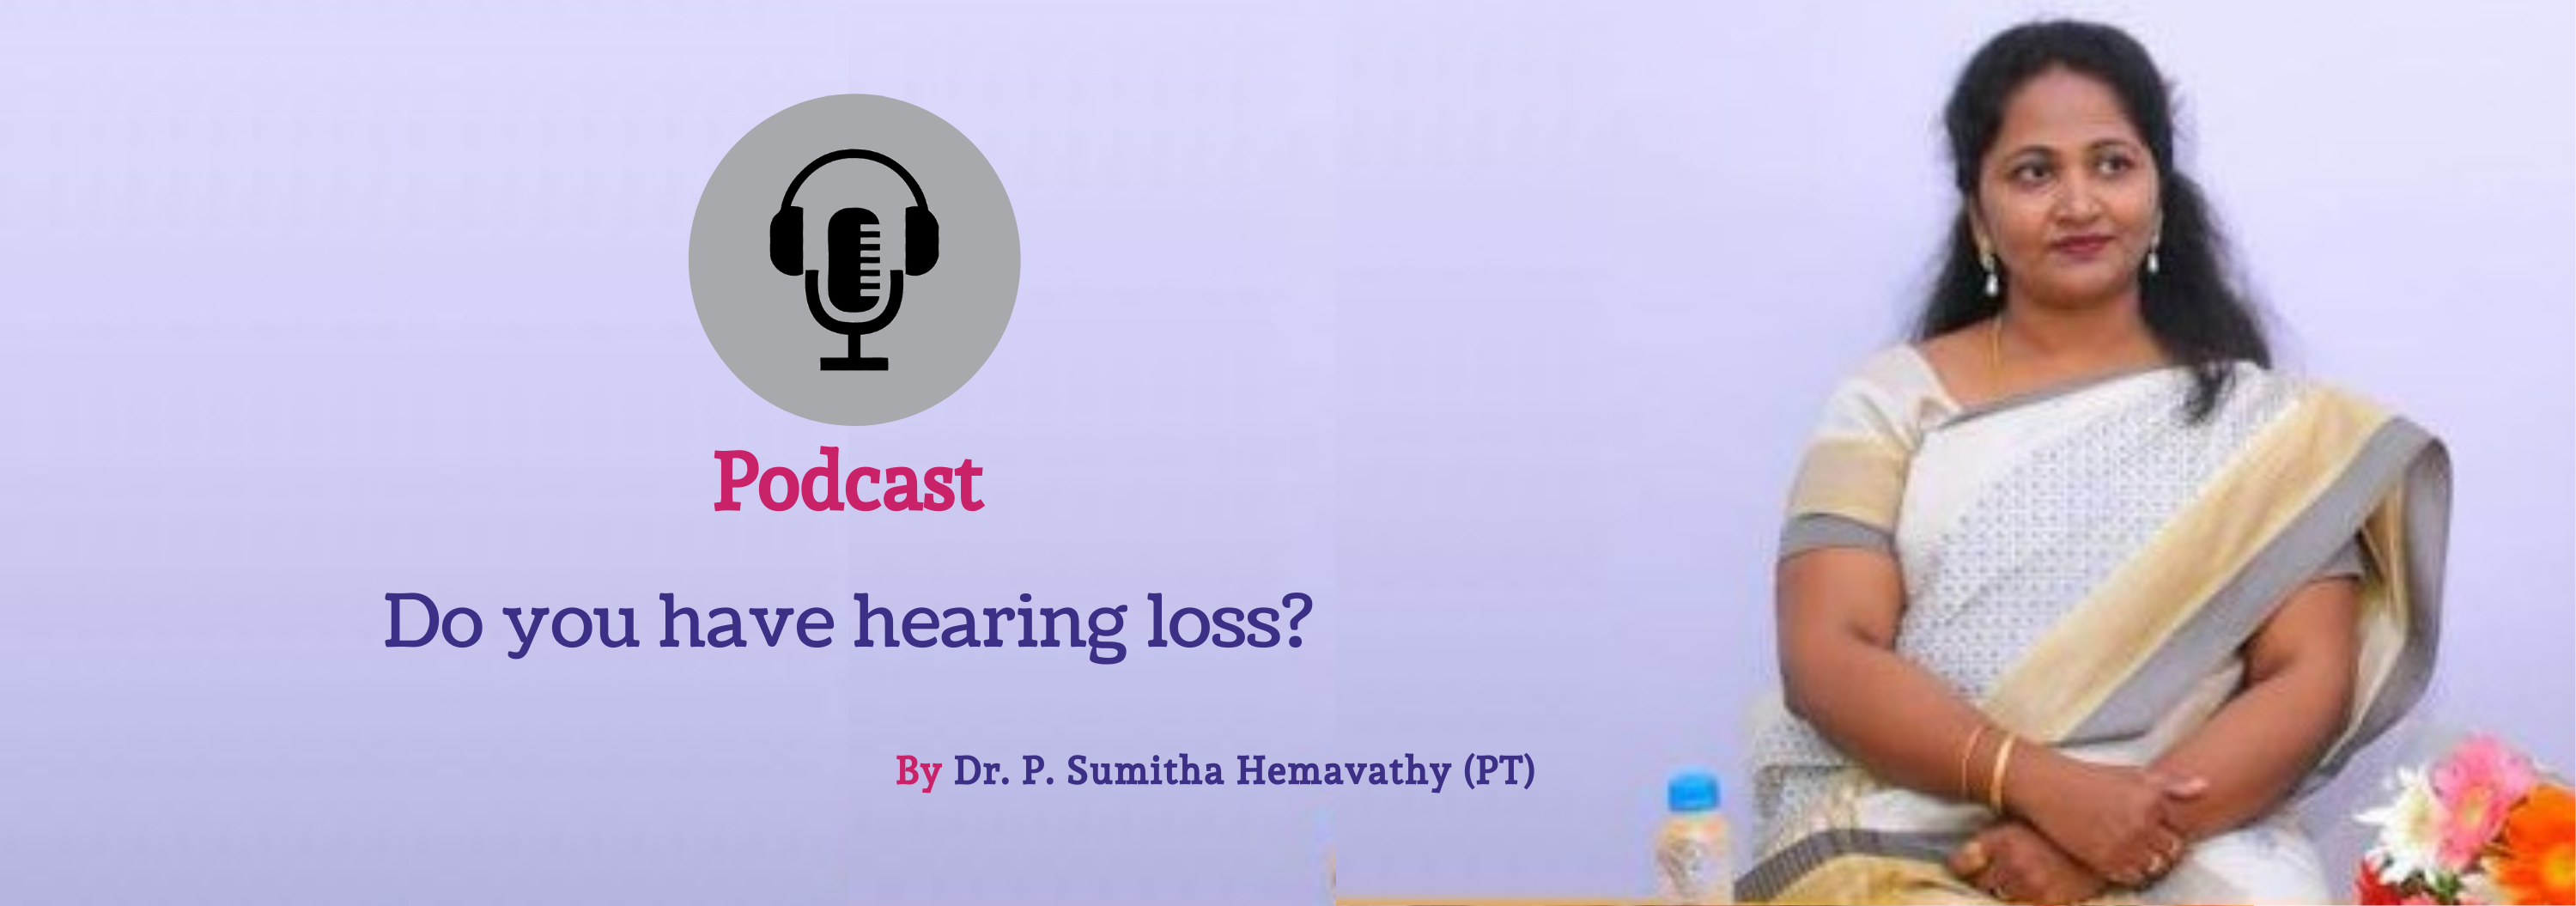 Hearing Loss Podcast by Dr. P. Sumitha Hemavathy (PT) - Hearing Aid Clinics in Bangalore - CAPAAR